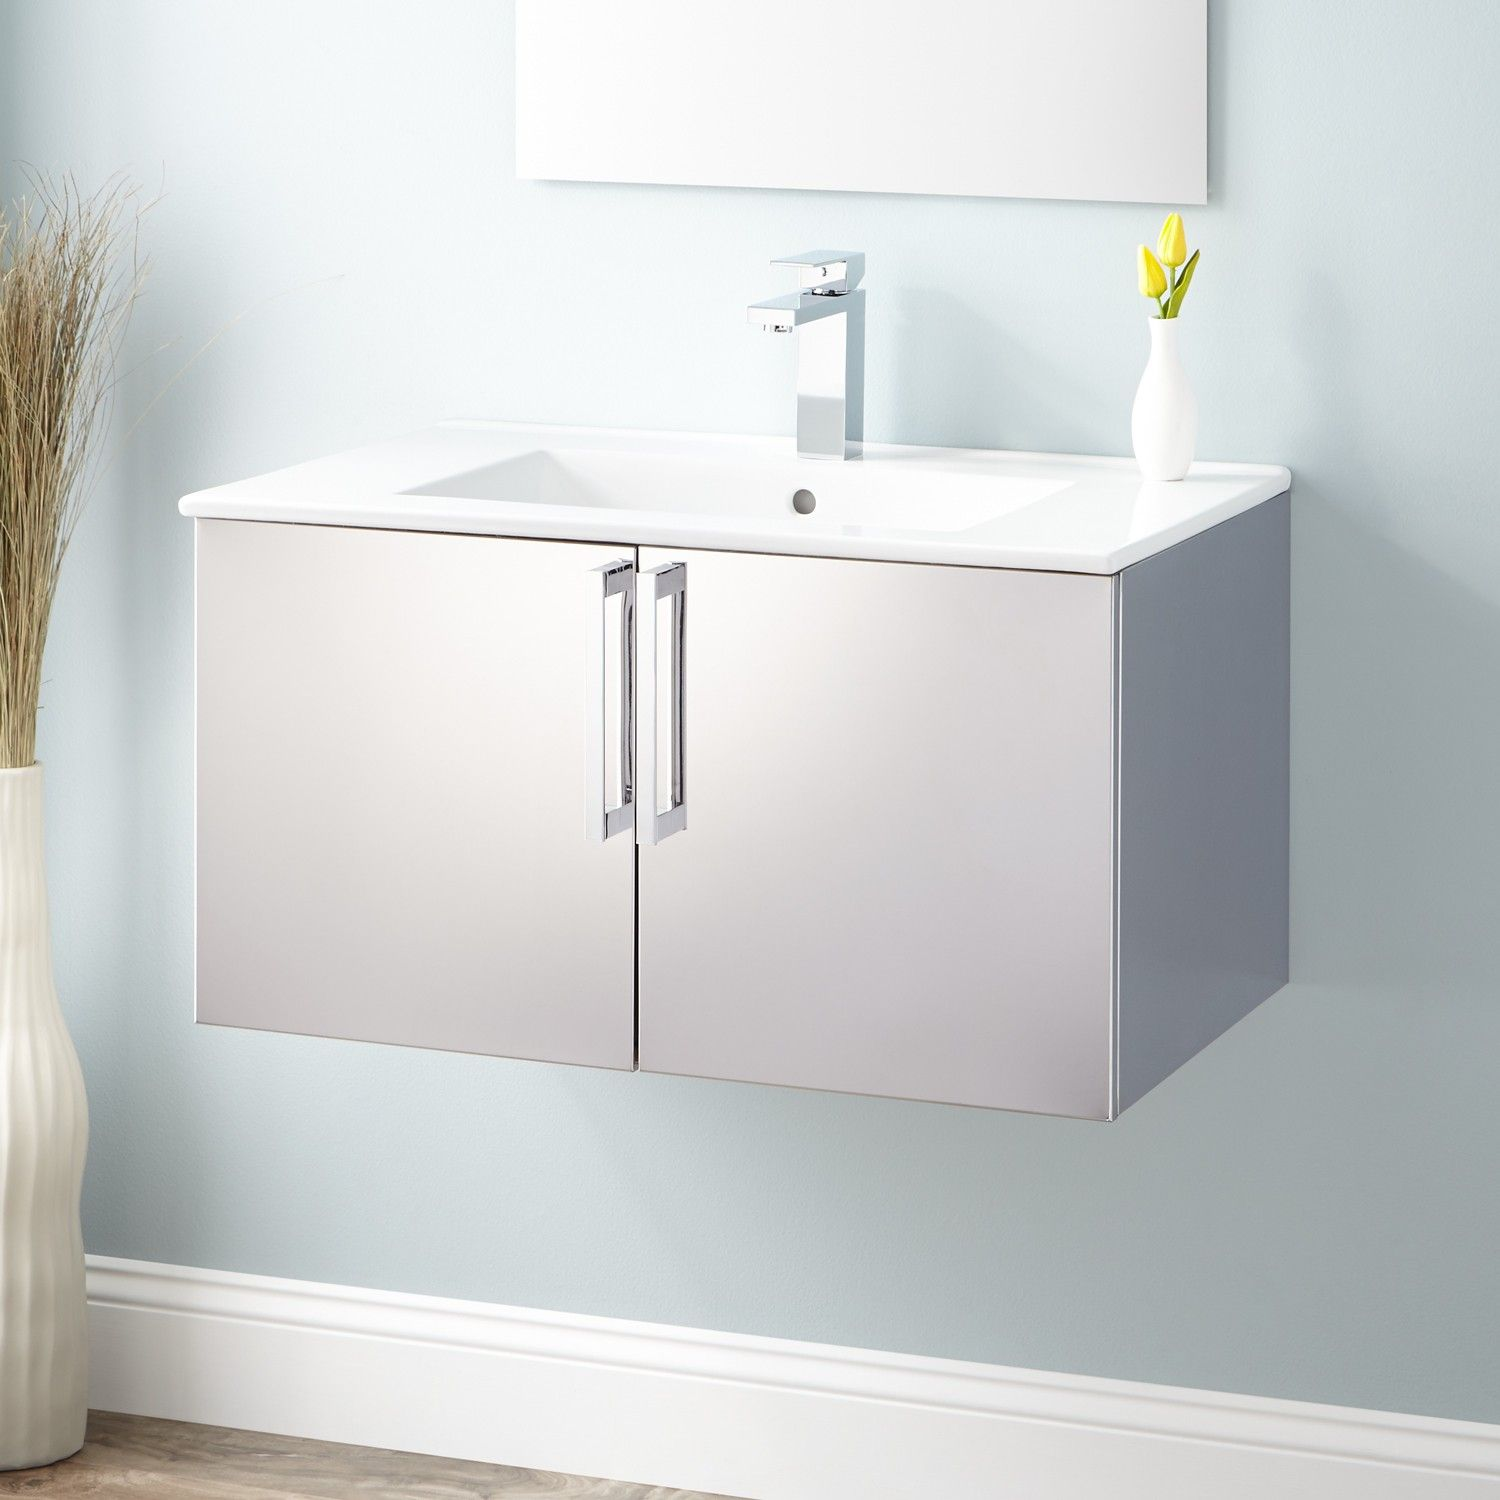 """30"""" Crosstown Stainless Steel Wallhung Vanity  Polished  Wall Fascinating 30 Bathroom Vanity With Drawers Review"""